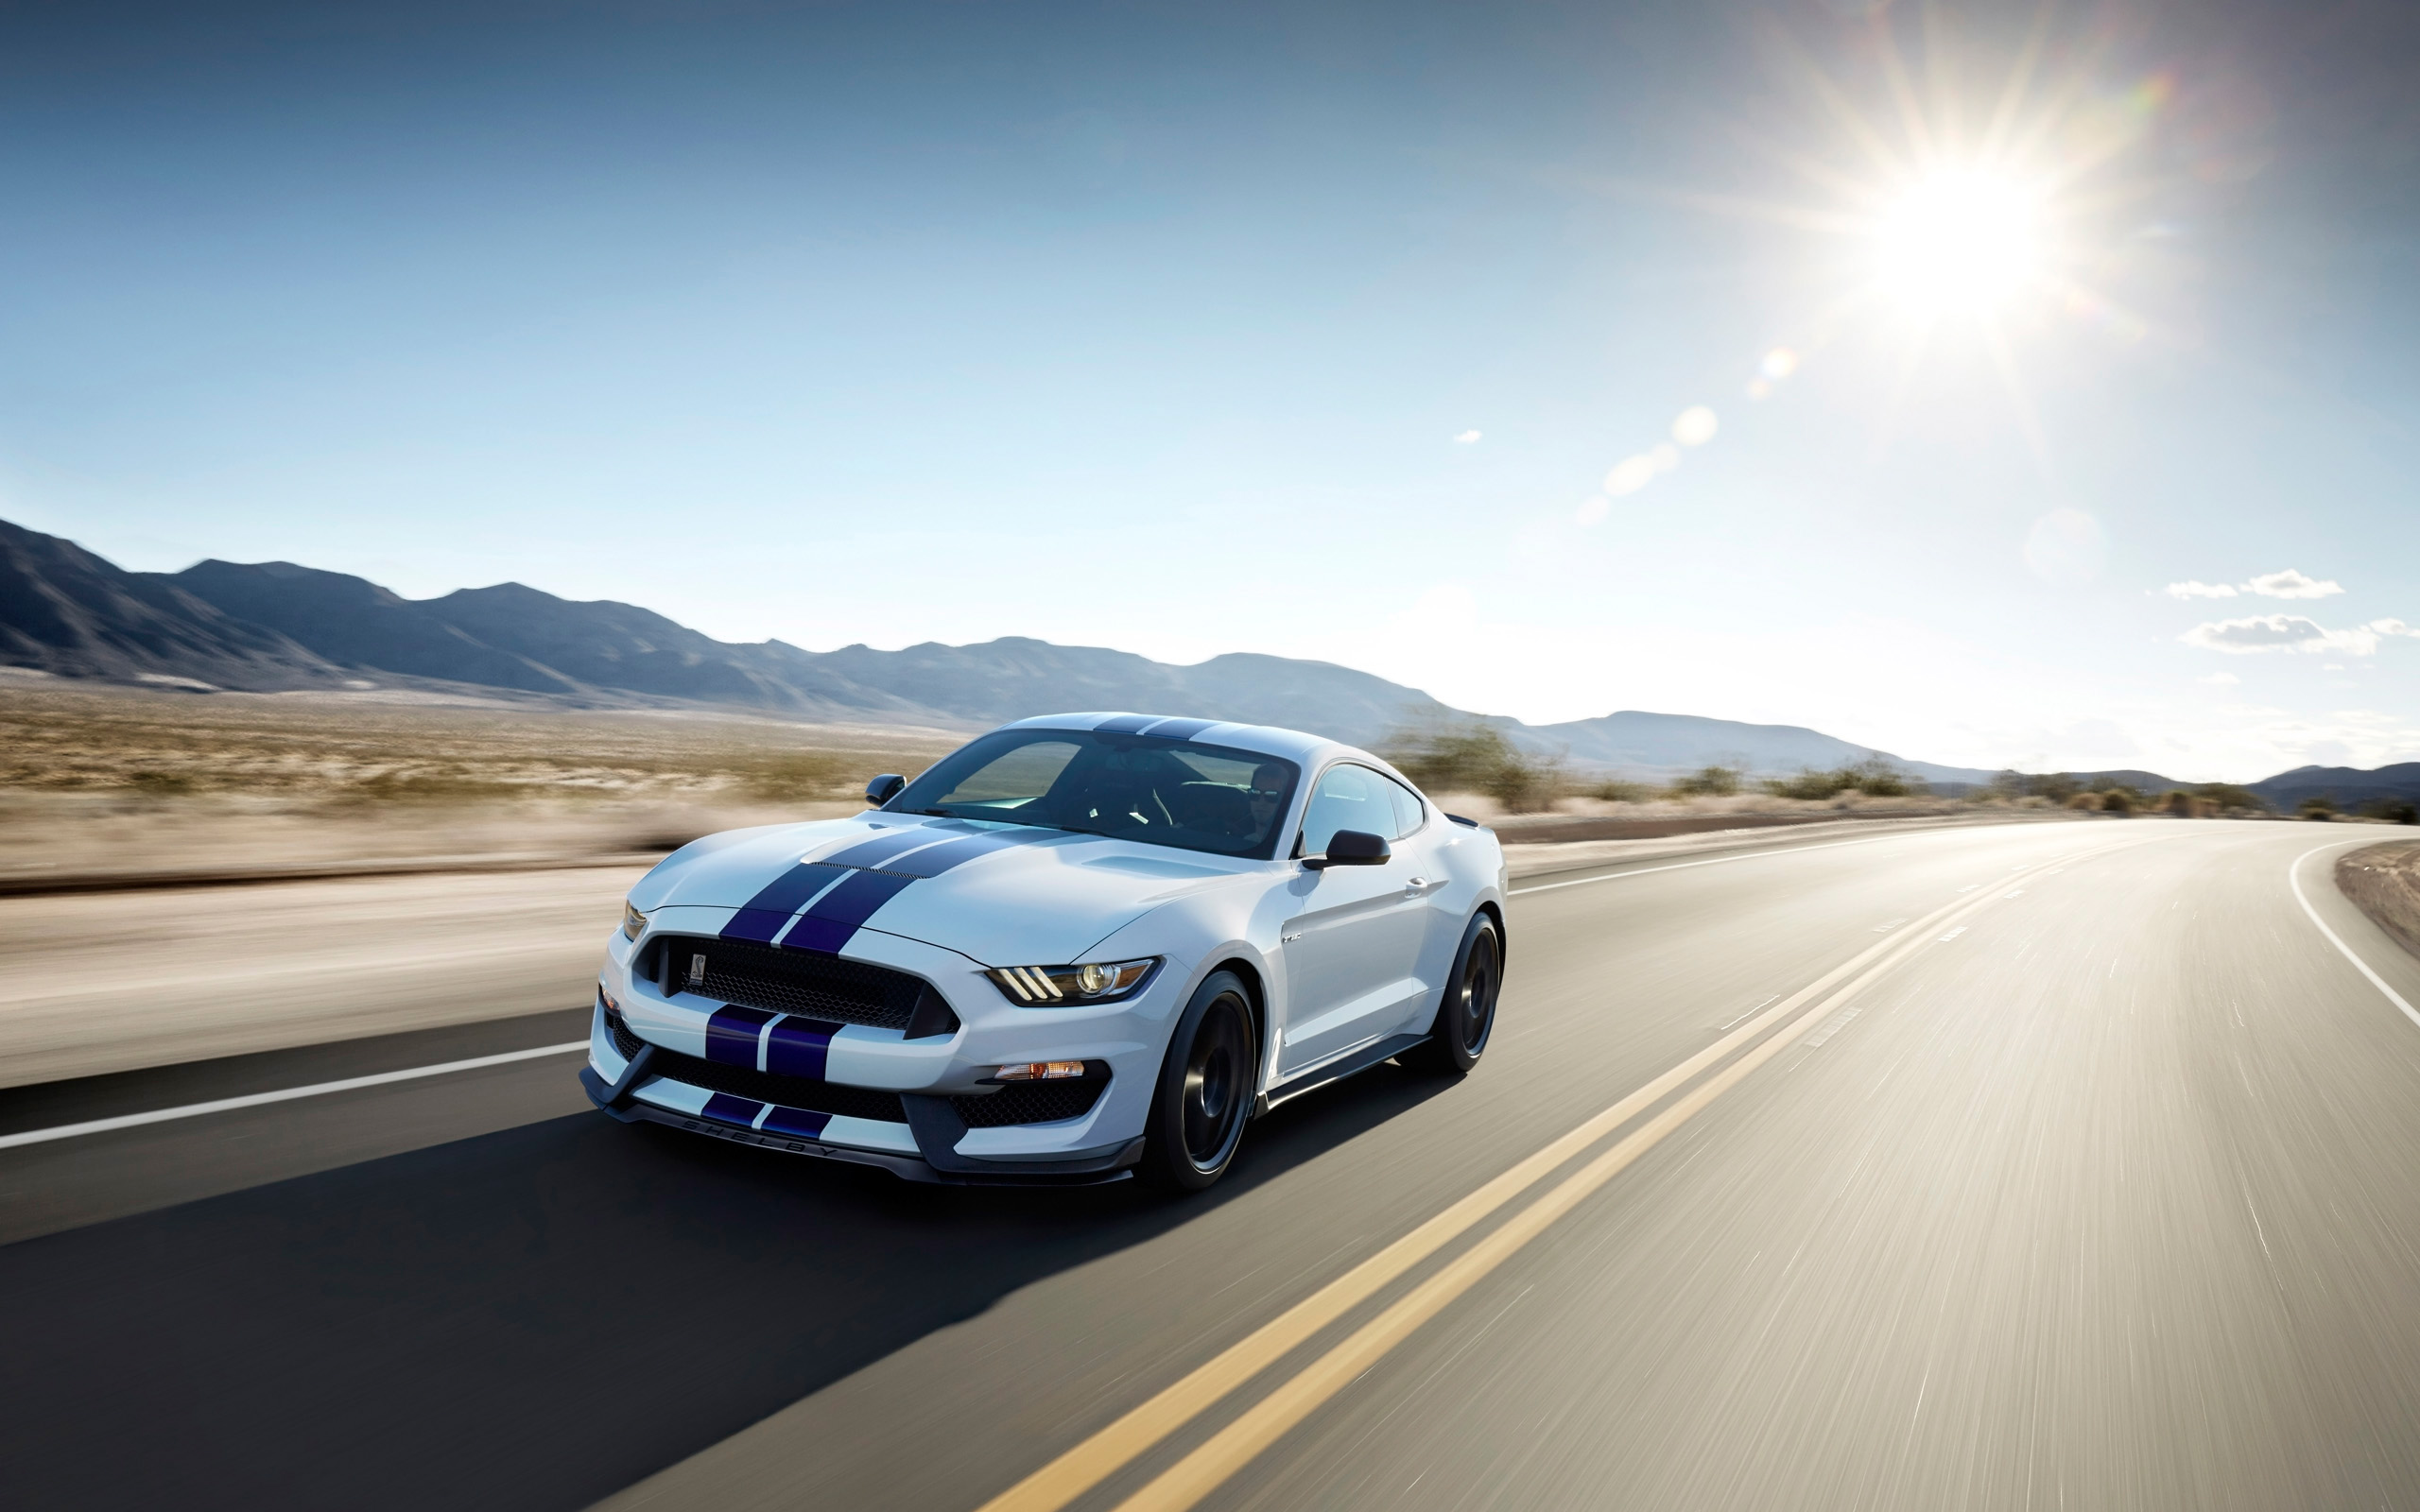 2560x1600 - Shelby Mustang GT 350 Wallpapers 7